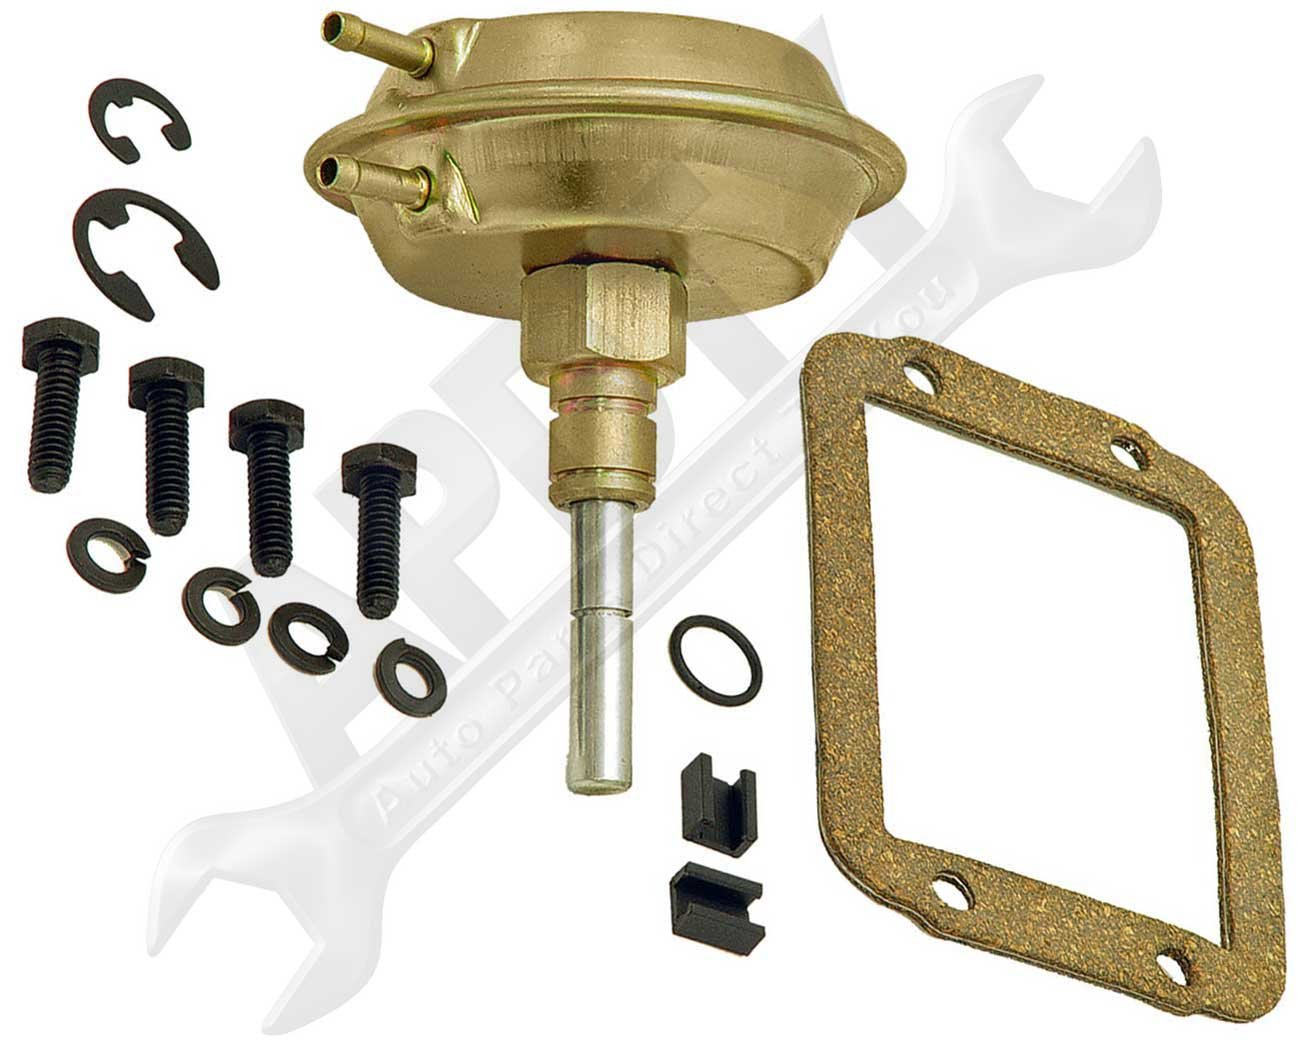 APDTY 711313 Front Axle 4WD Vacuum Actuator KIt Fits Select 91-95 Jeeps & 90-02 Dodge Models (See Description For Fitment Details; Replaces 4506116, 4882682)